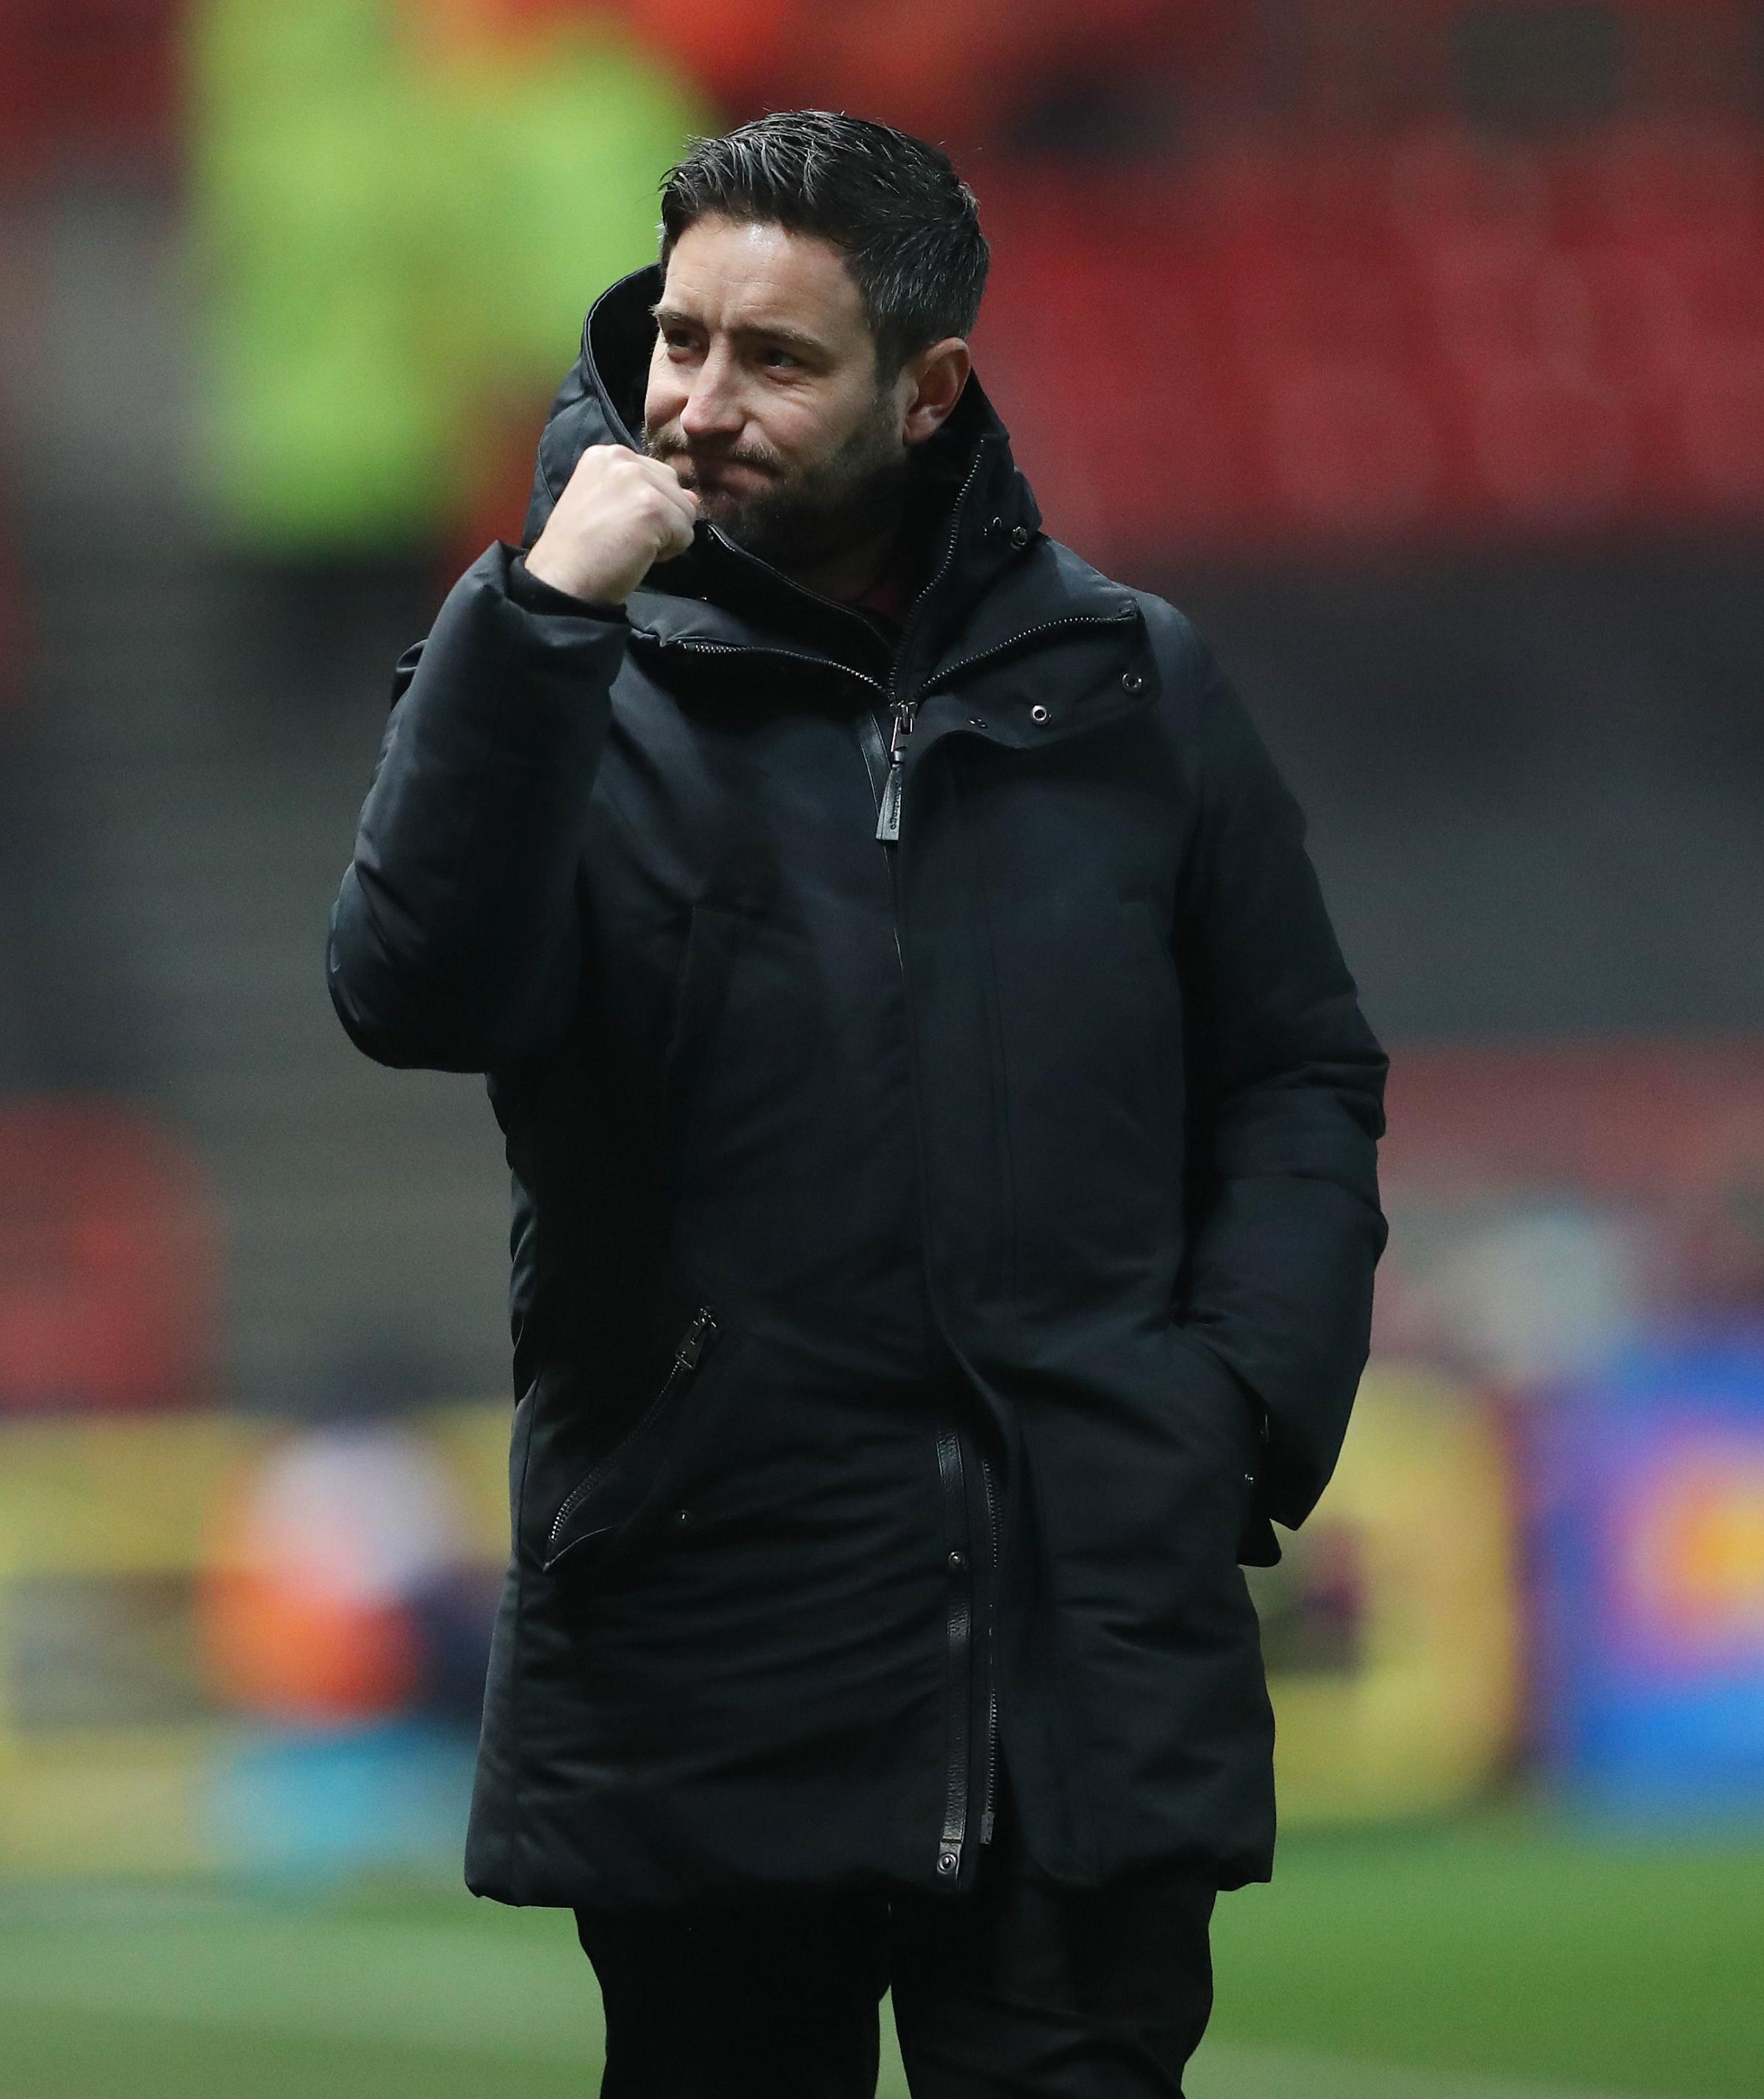 Bristol City manager Lee Johnson celebrates their victory in the Emirates FA Cup, third round match at Ashton Gate, Bristol. PRESS ASSOCIATION Photo. Picture date: Saturday January 5, 2019. See PA story SOCCER Bristol City. Photo credit should read: David